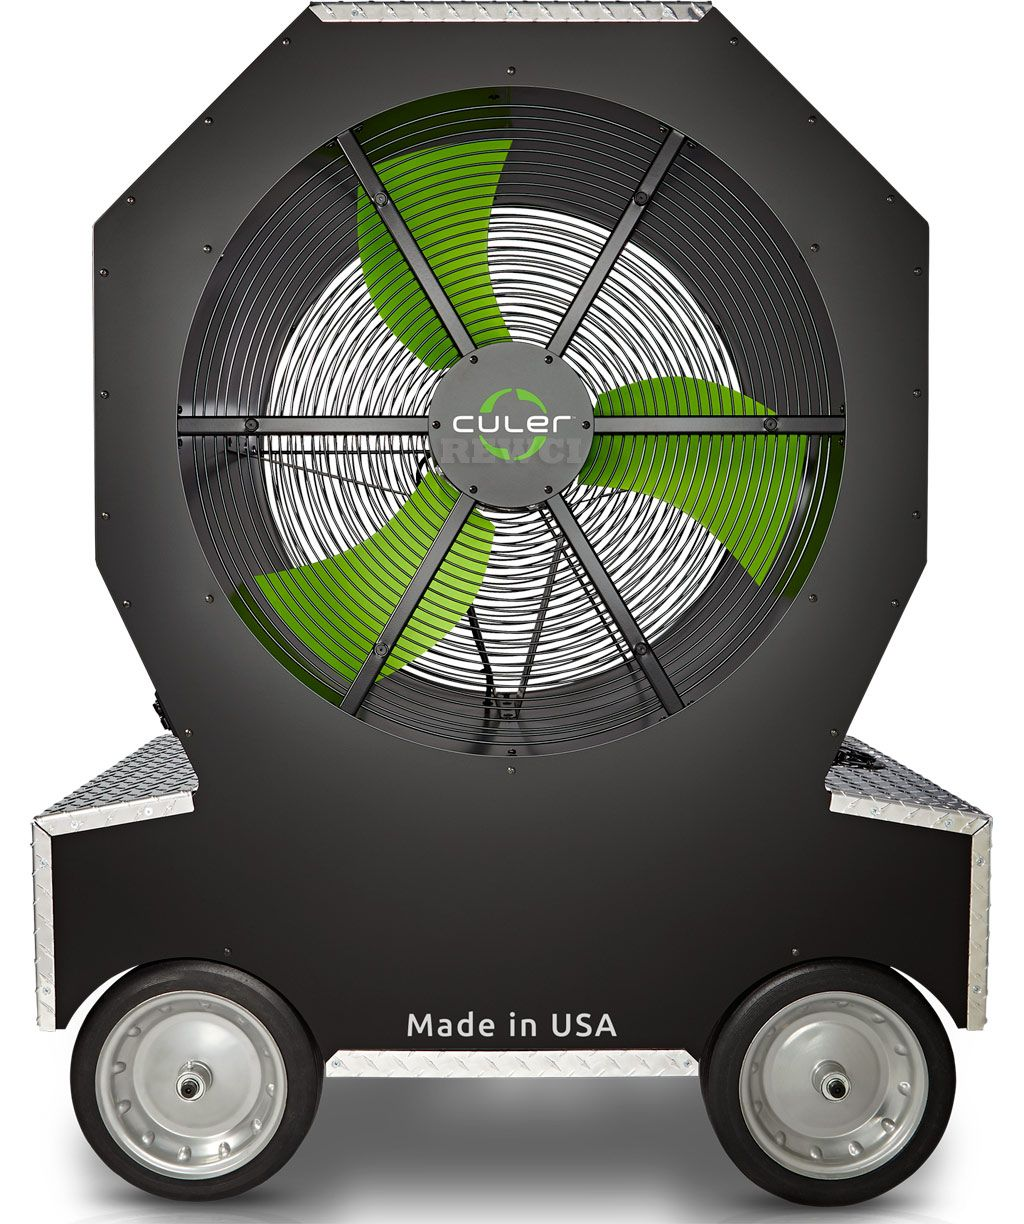 Culer Pro XC3000 Space Cooler 2,699.00 Cools very